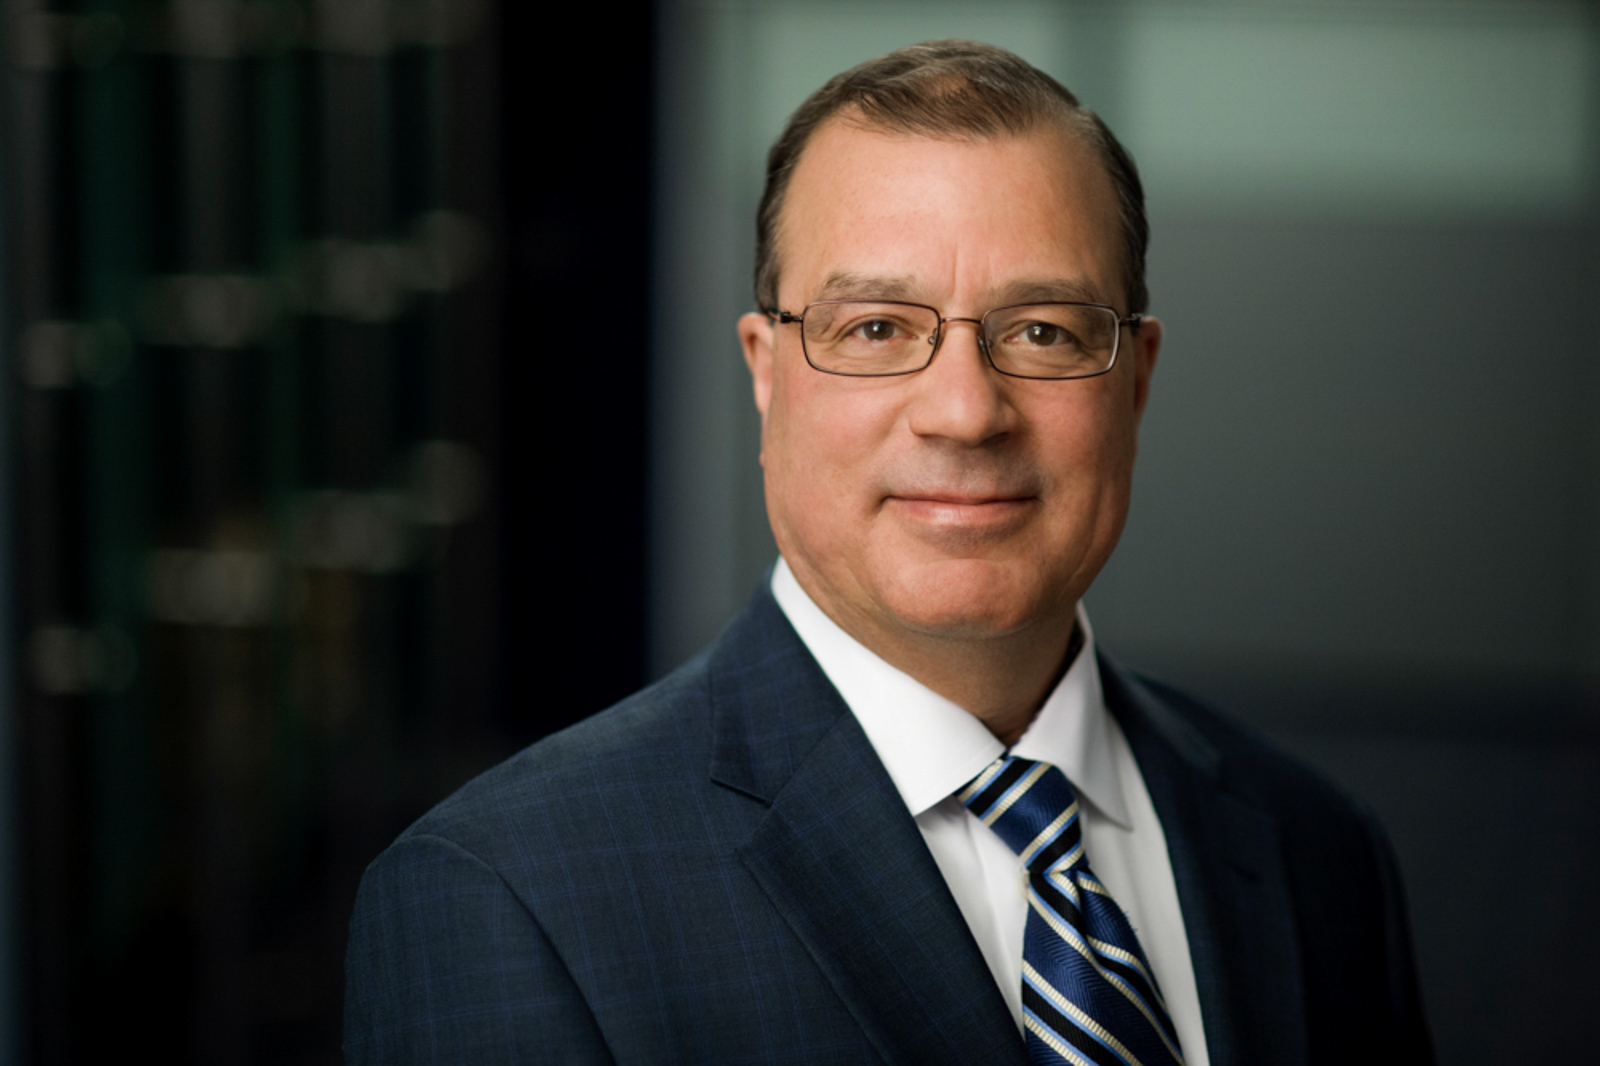 Portrait of business man wearing suit and glasses, with a soft smile